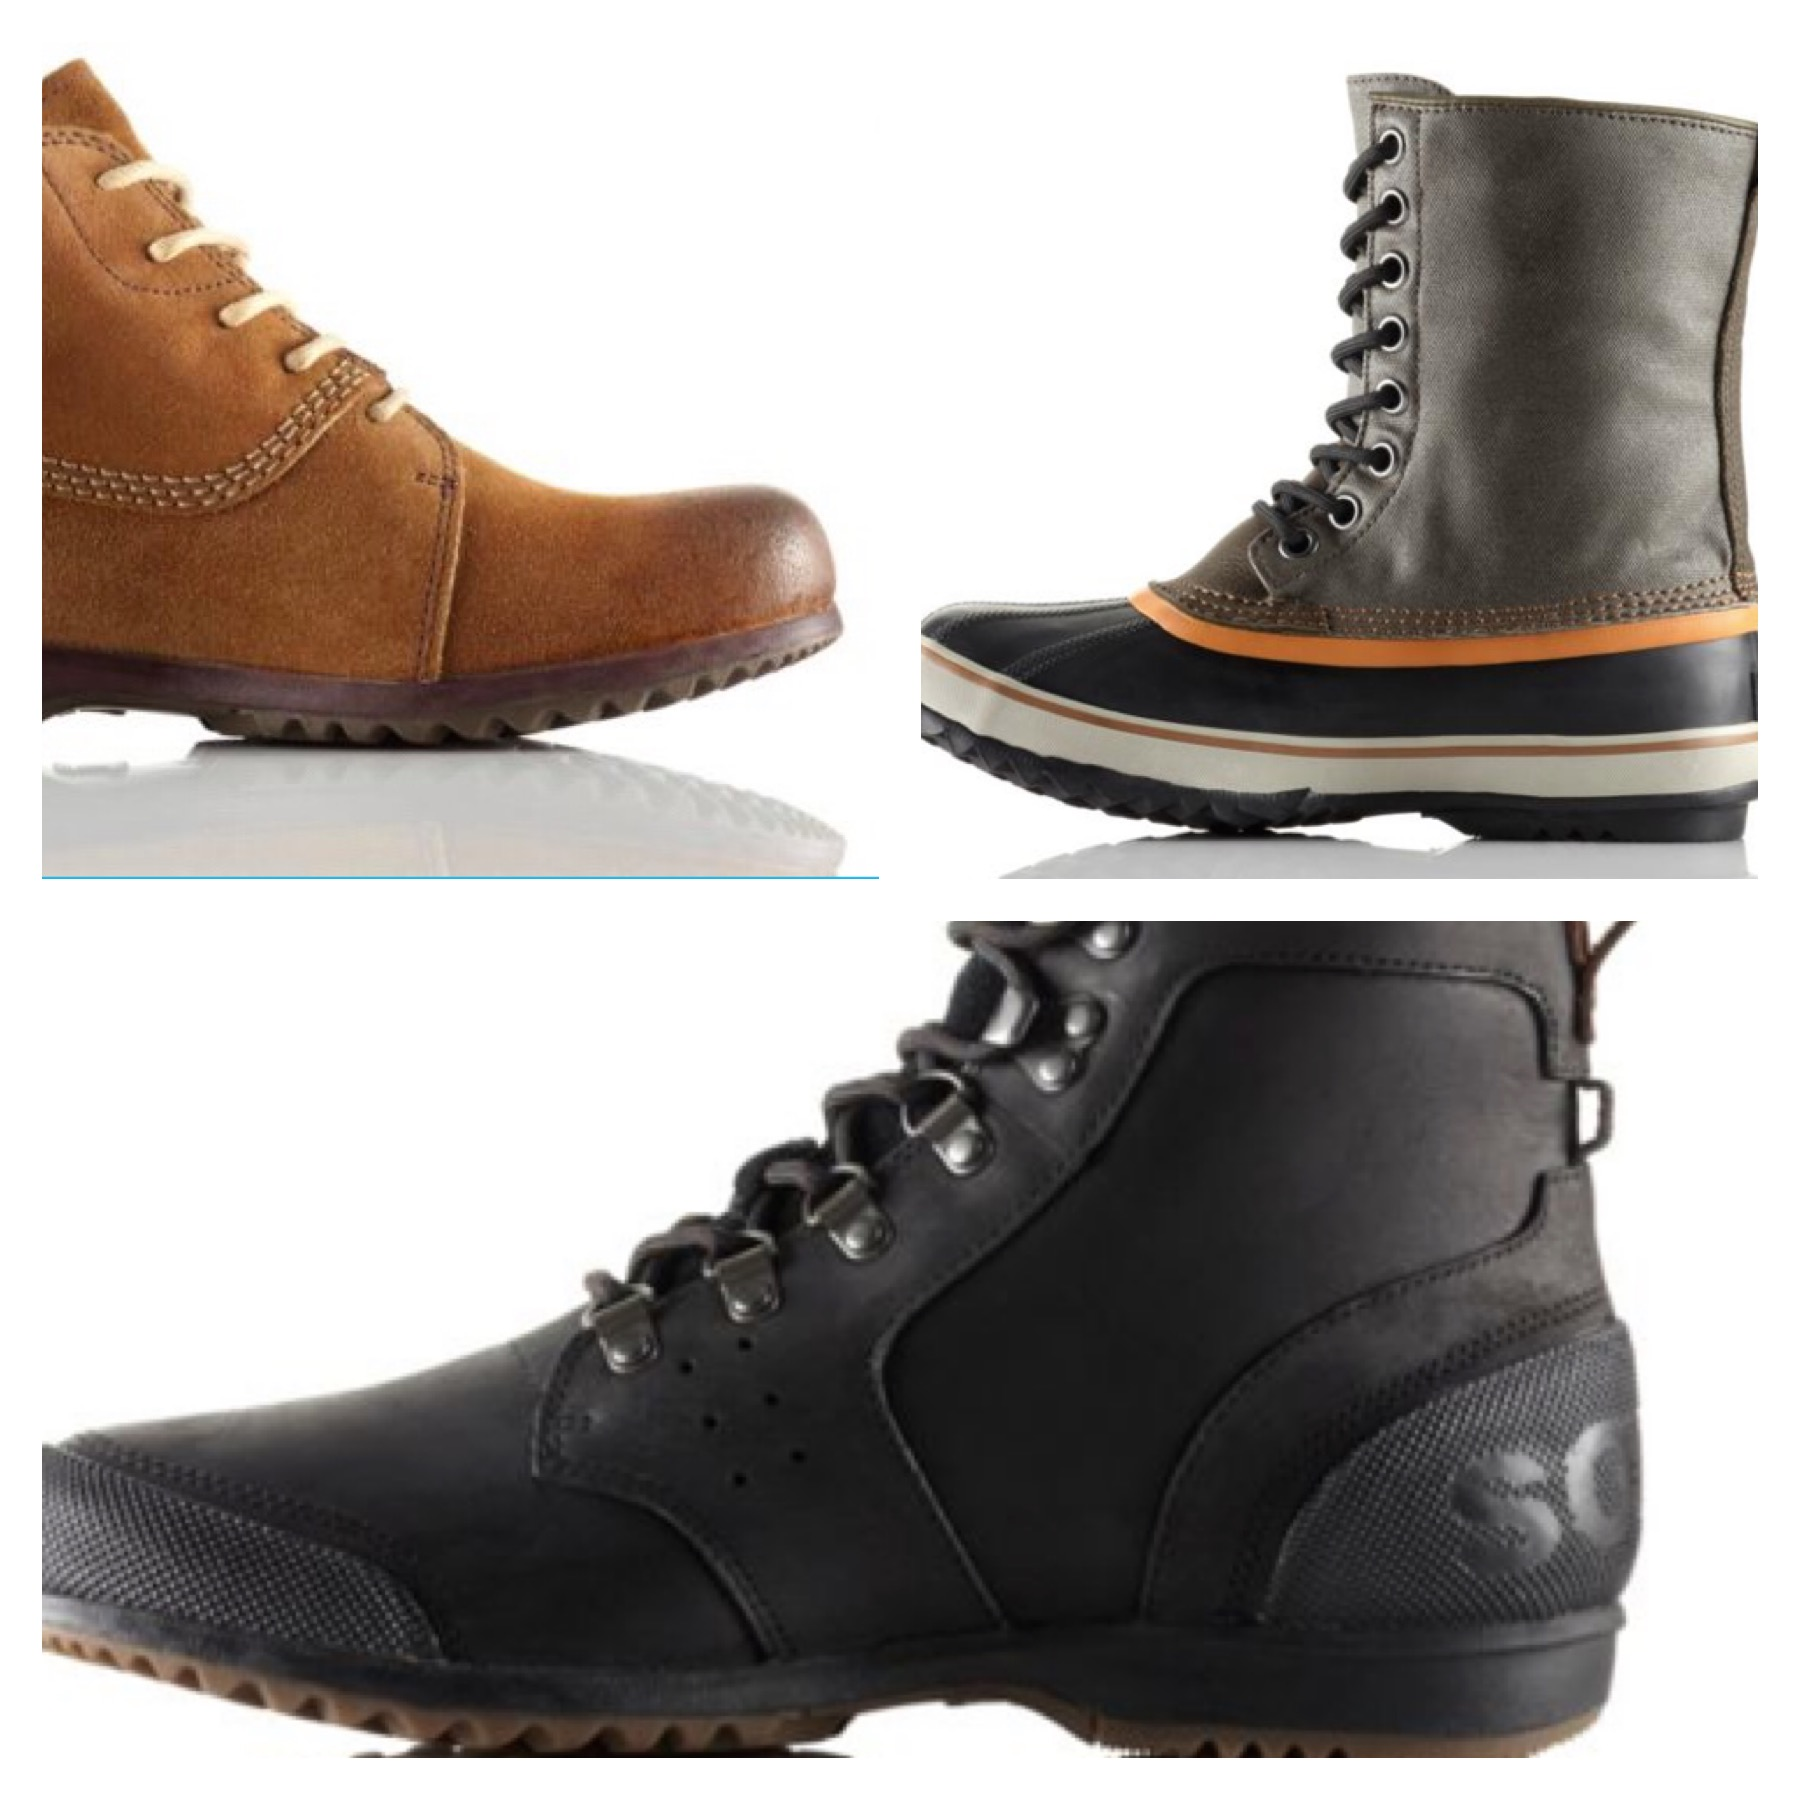 Winter boots don't have to be ugly. Sorel has versatile styles that look good, keep your feet warm and dry and may even be on sale right now!!